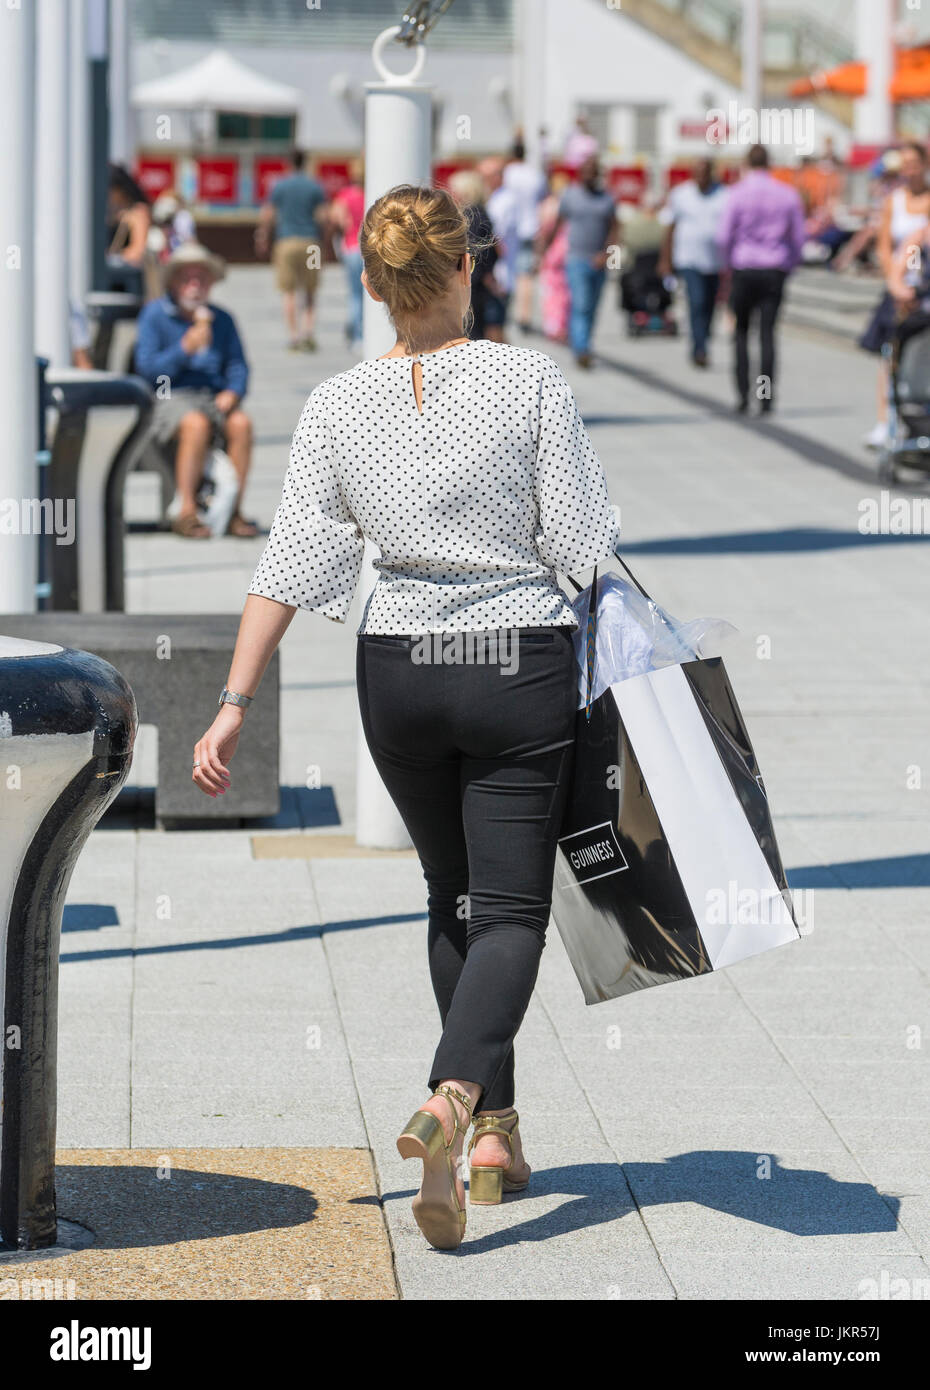 Young classy woman walking, dressed well with expensive taste, carrying clothing shopping bag. - Stock Image